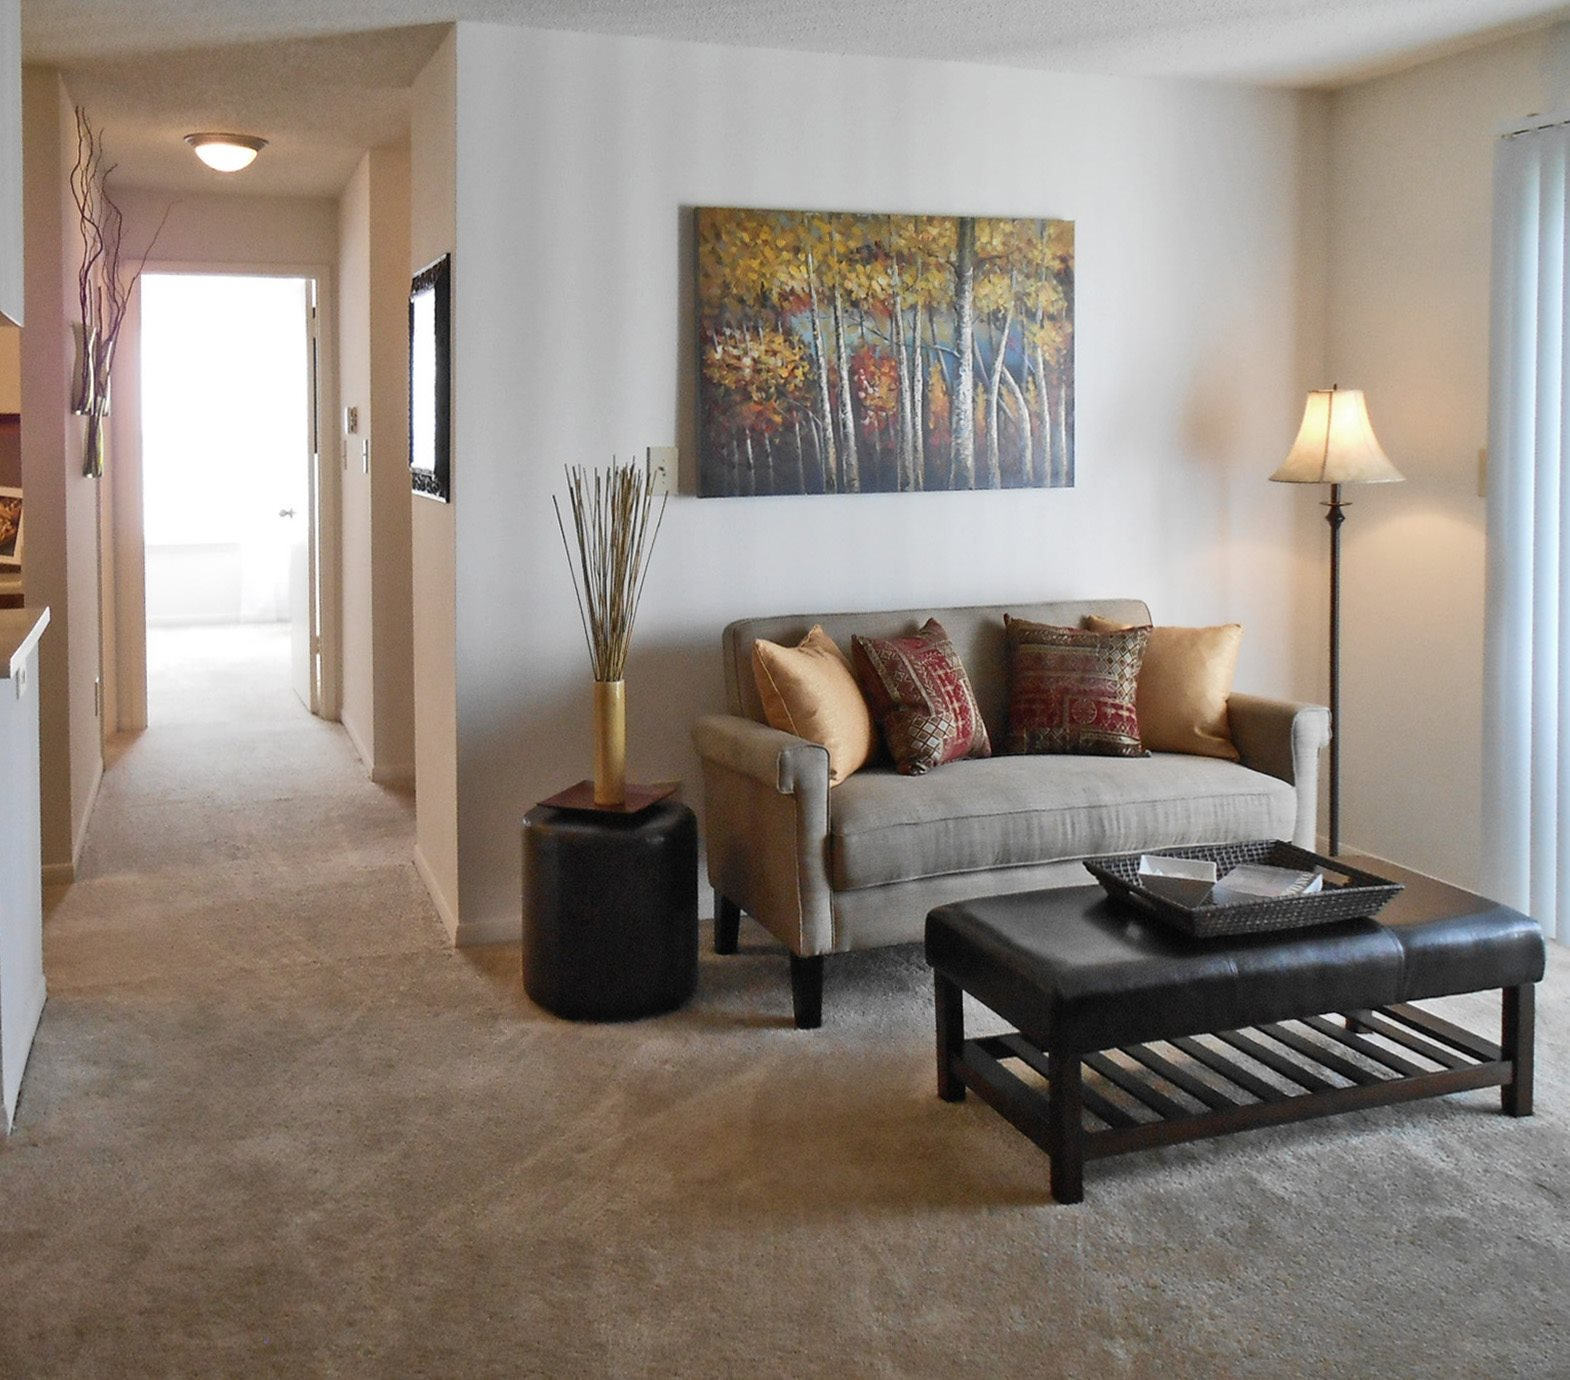 Arbors of dublin apartments in dublin oh 2 bedroom apartments in dublin ohio